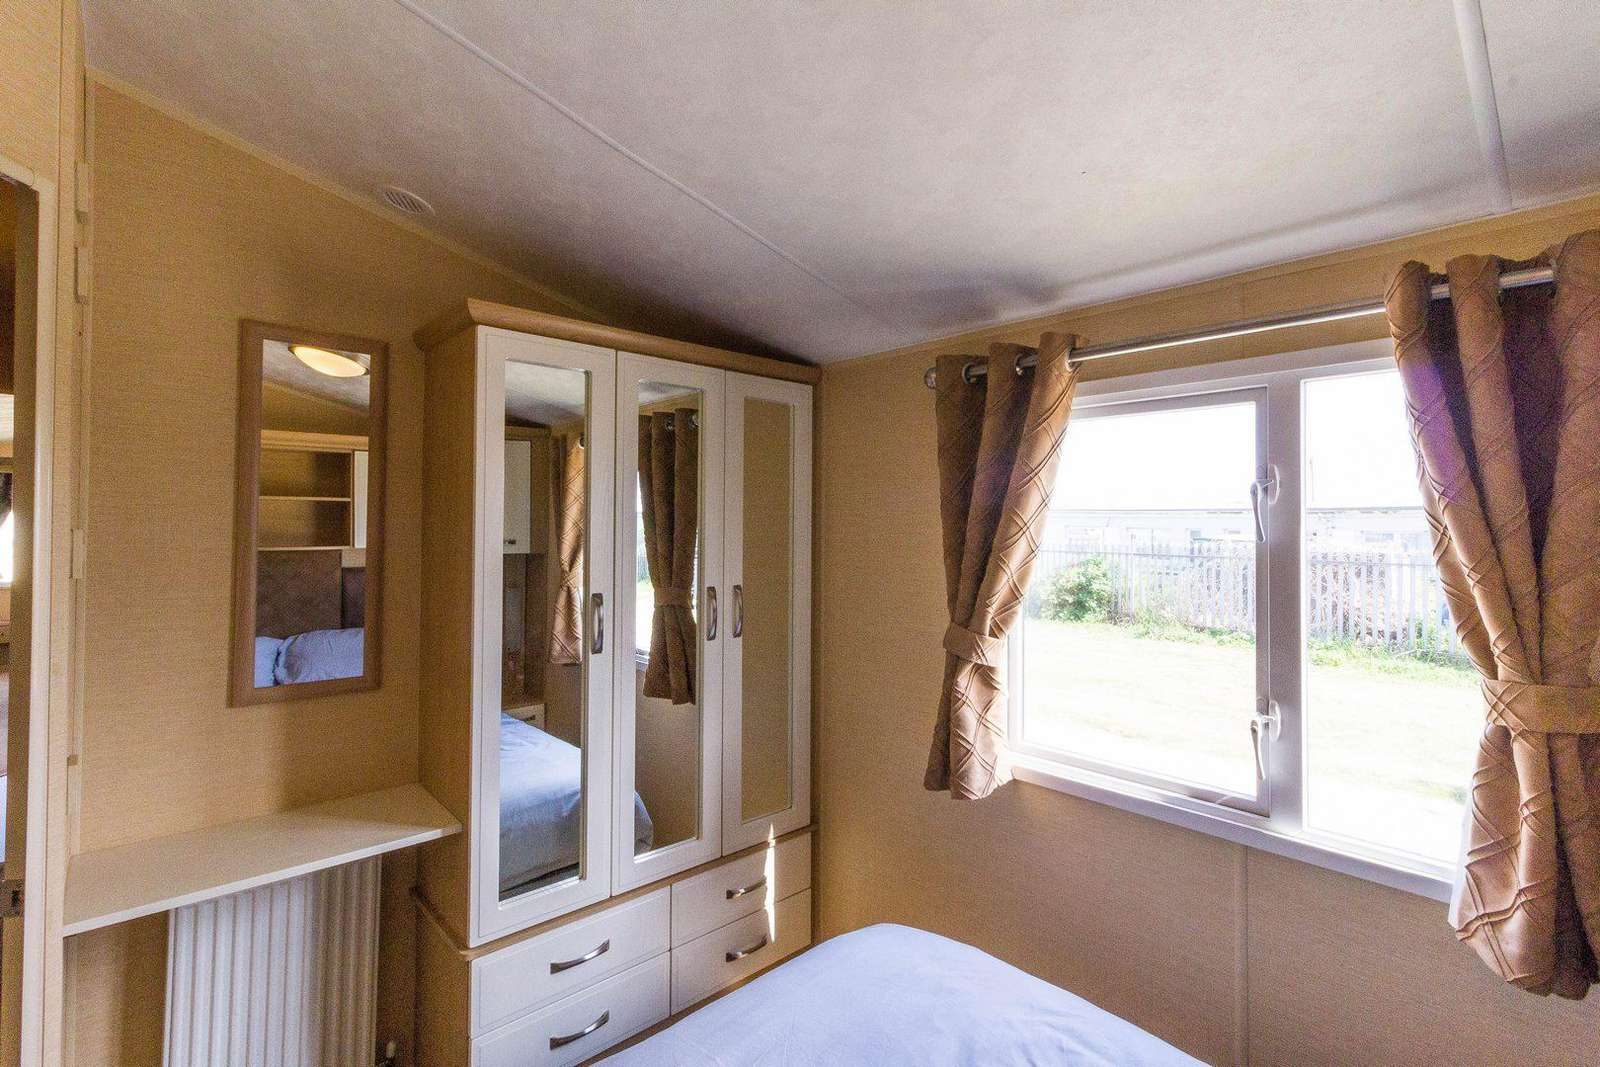 You can find plenty of storage in this master bedroom